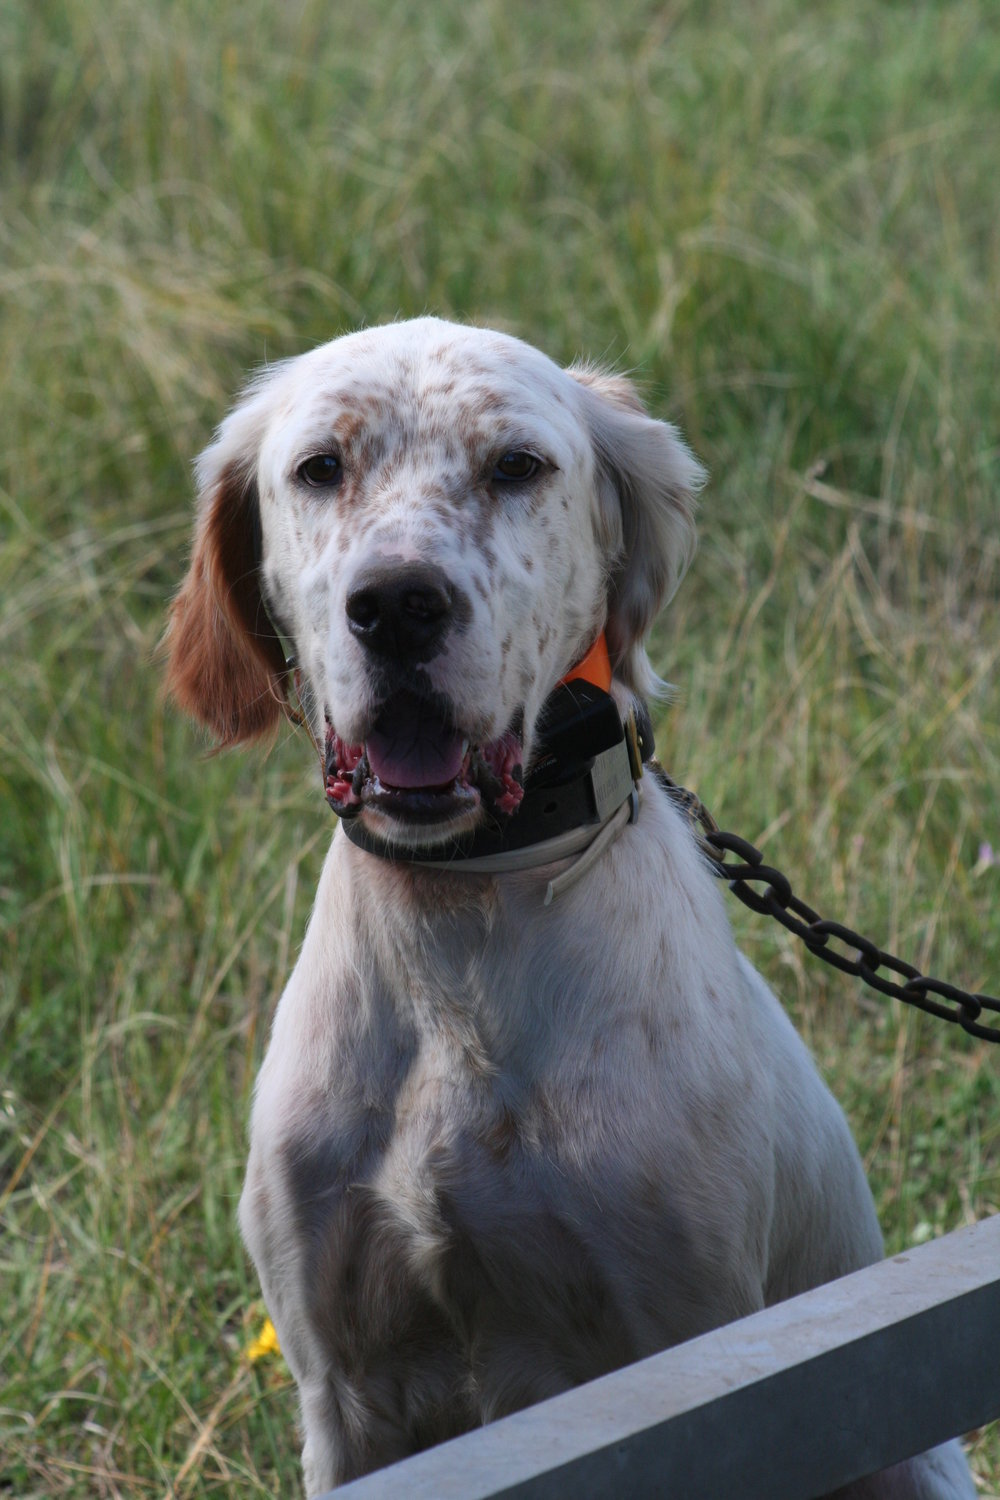 Stoney Brook's Apple Jack    Cider is a Ryman-type English Setter. He is entering his third hunting season and is really doing well in the field. He has been easy to train and is a great house dog. Cider is our sweetheart, he has yet to meet anyone he doesn't like. We are looking forward to his future and the things he has yet to reveal to us.